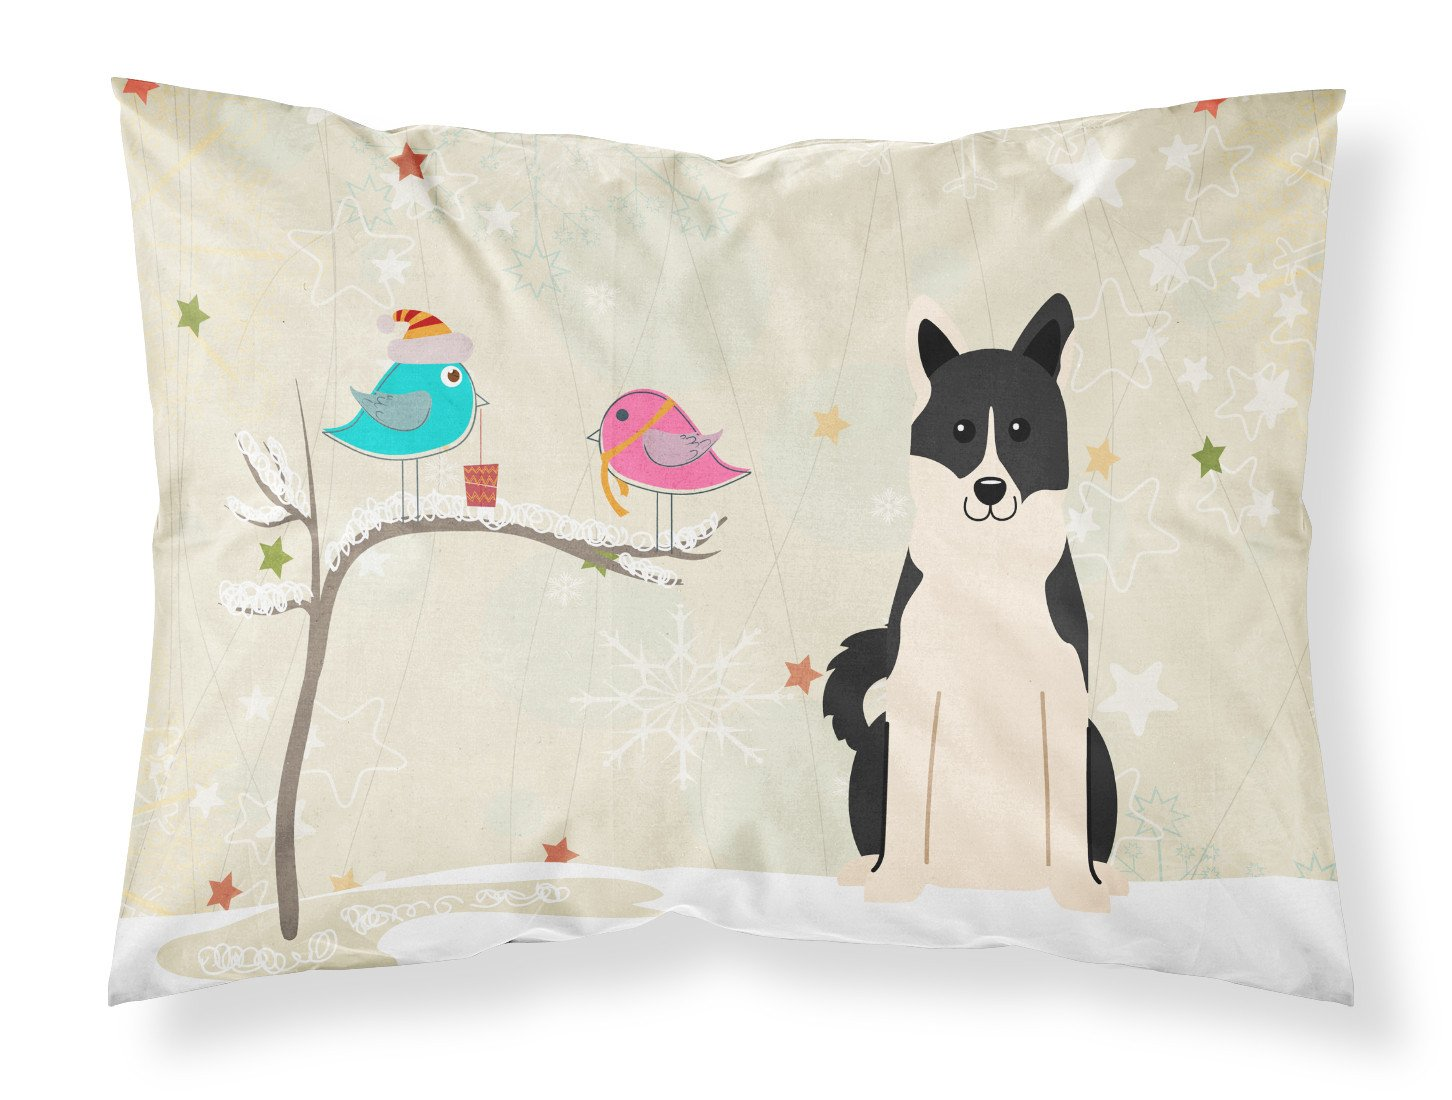 Christmas Presents between Friends Russo-European Laika Spitz Fabric Standard Pillowcase BB2501PILLOWCASE by Caroline's Treasures